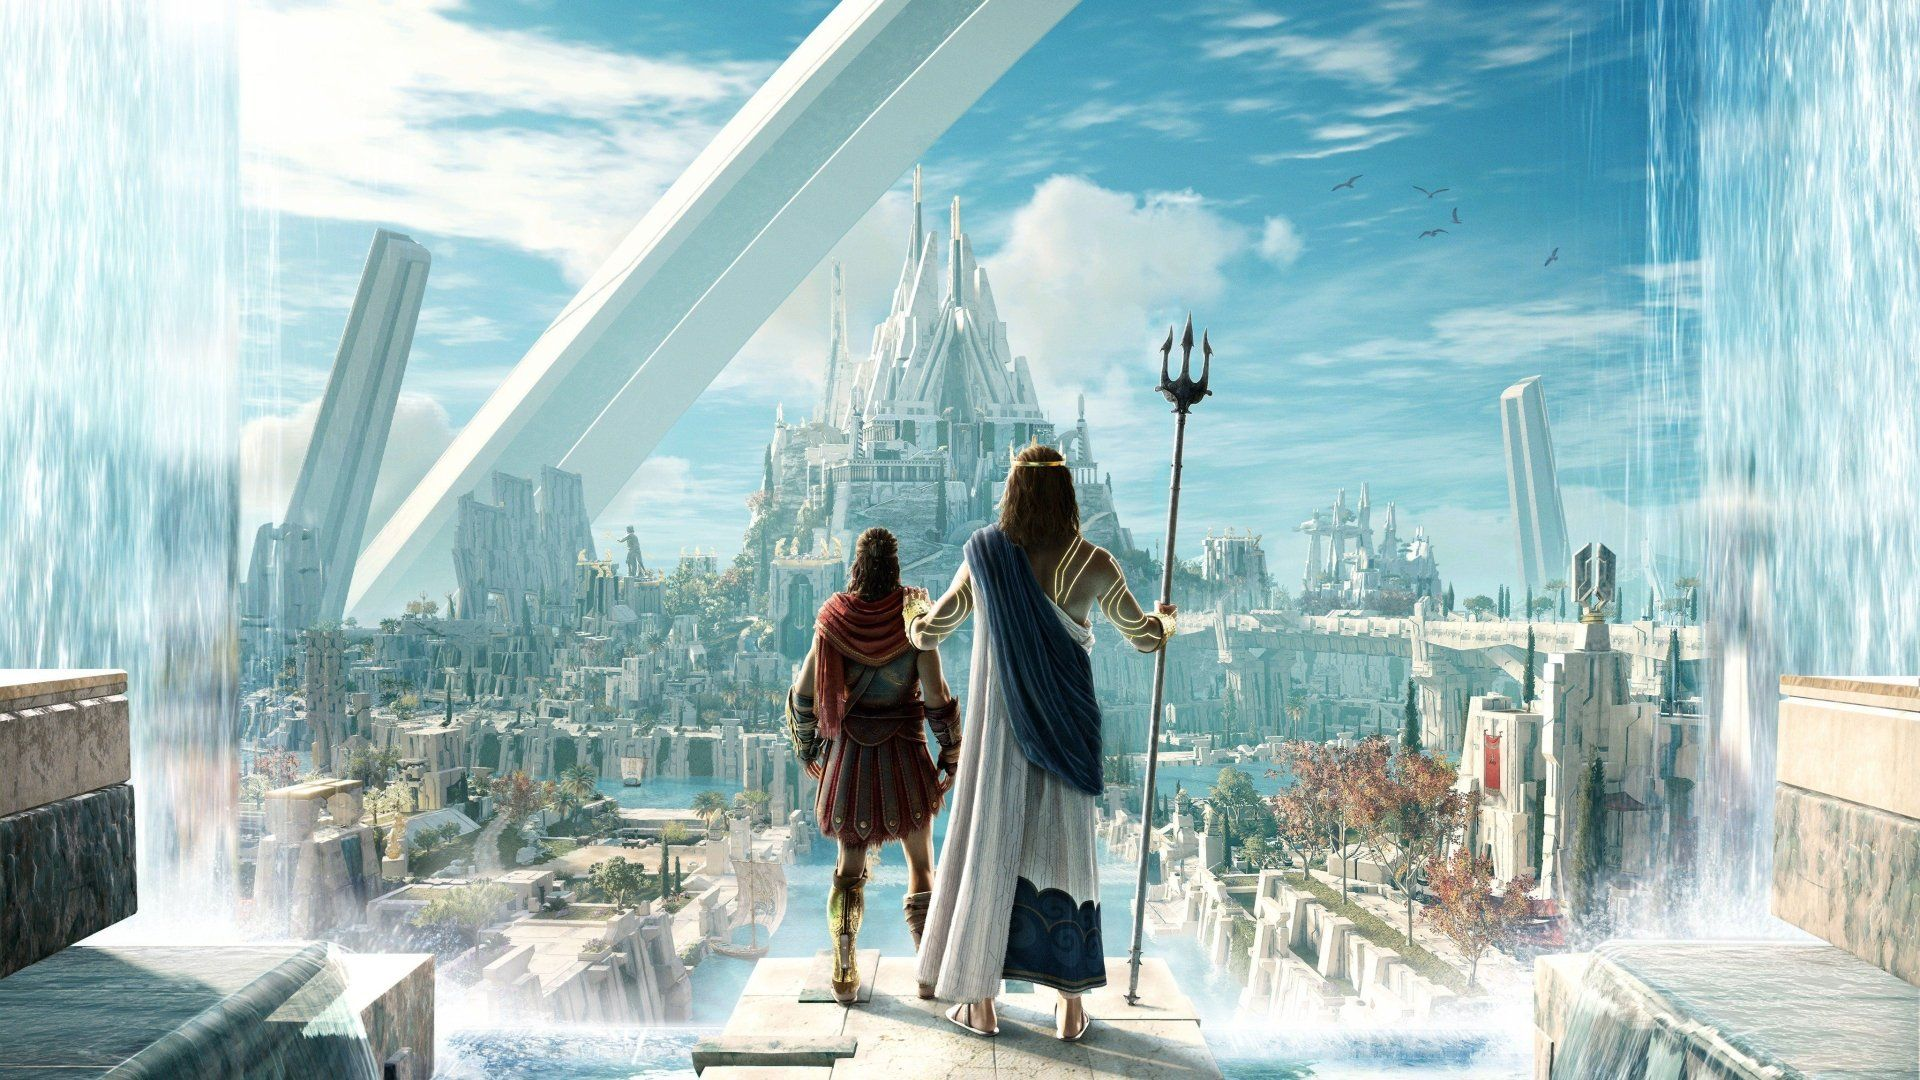 Pin By Ryan H On Pinbored In 2020 Assassin S Creed Wallpaper Assassins Creed Assassins Creed Odyssey The fate of atlantis episode 3